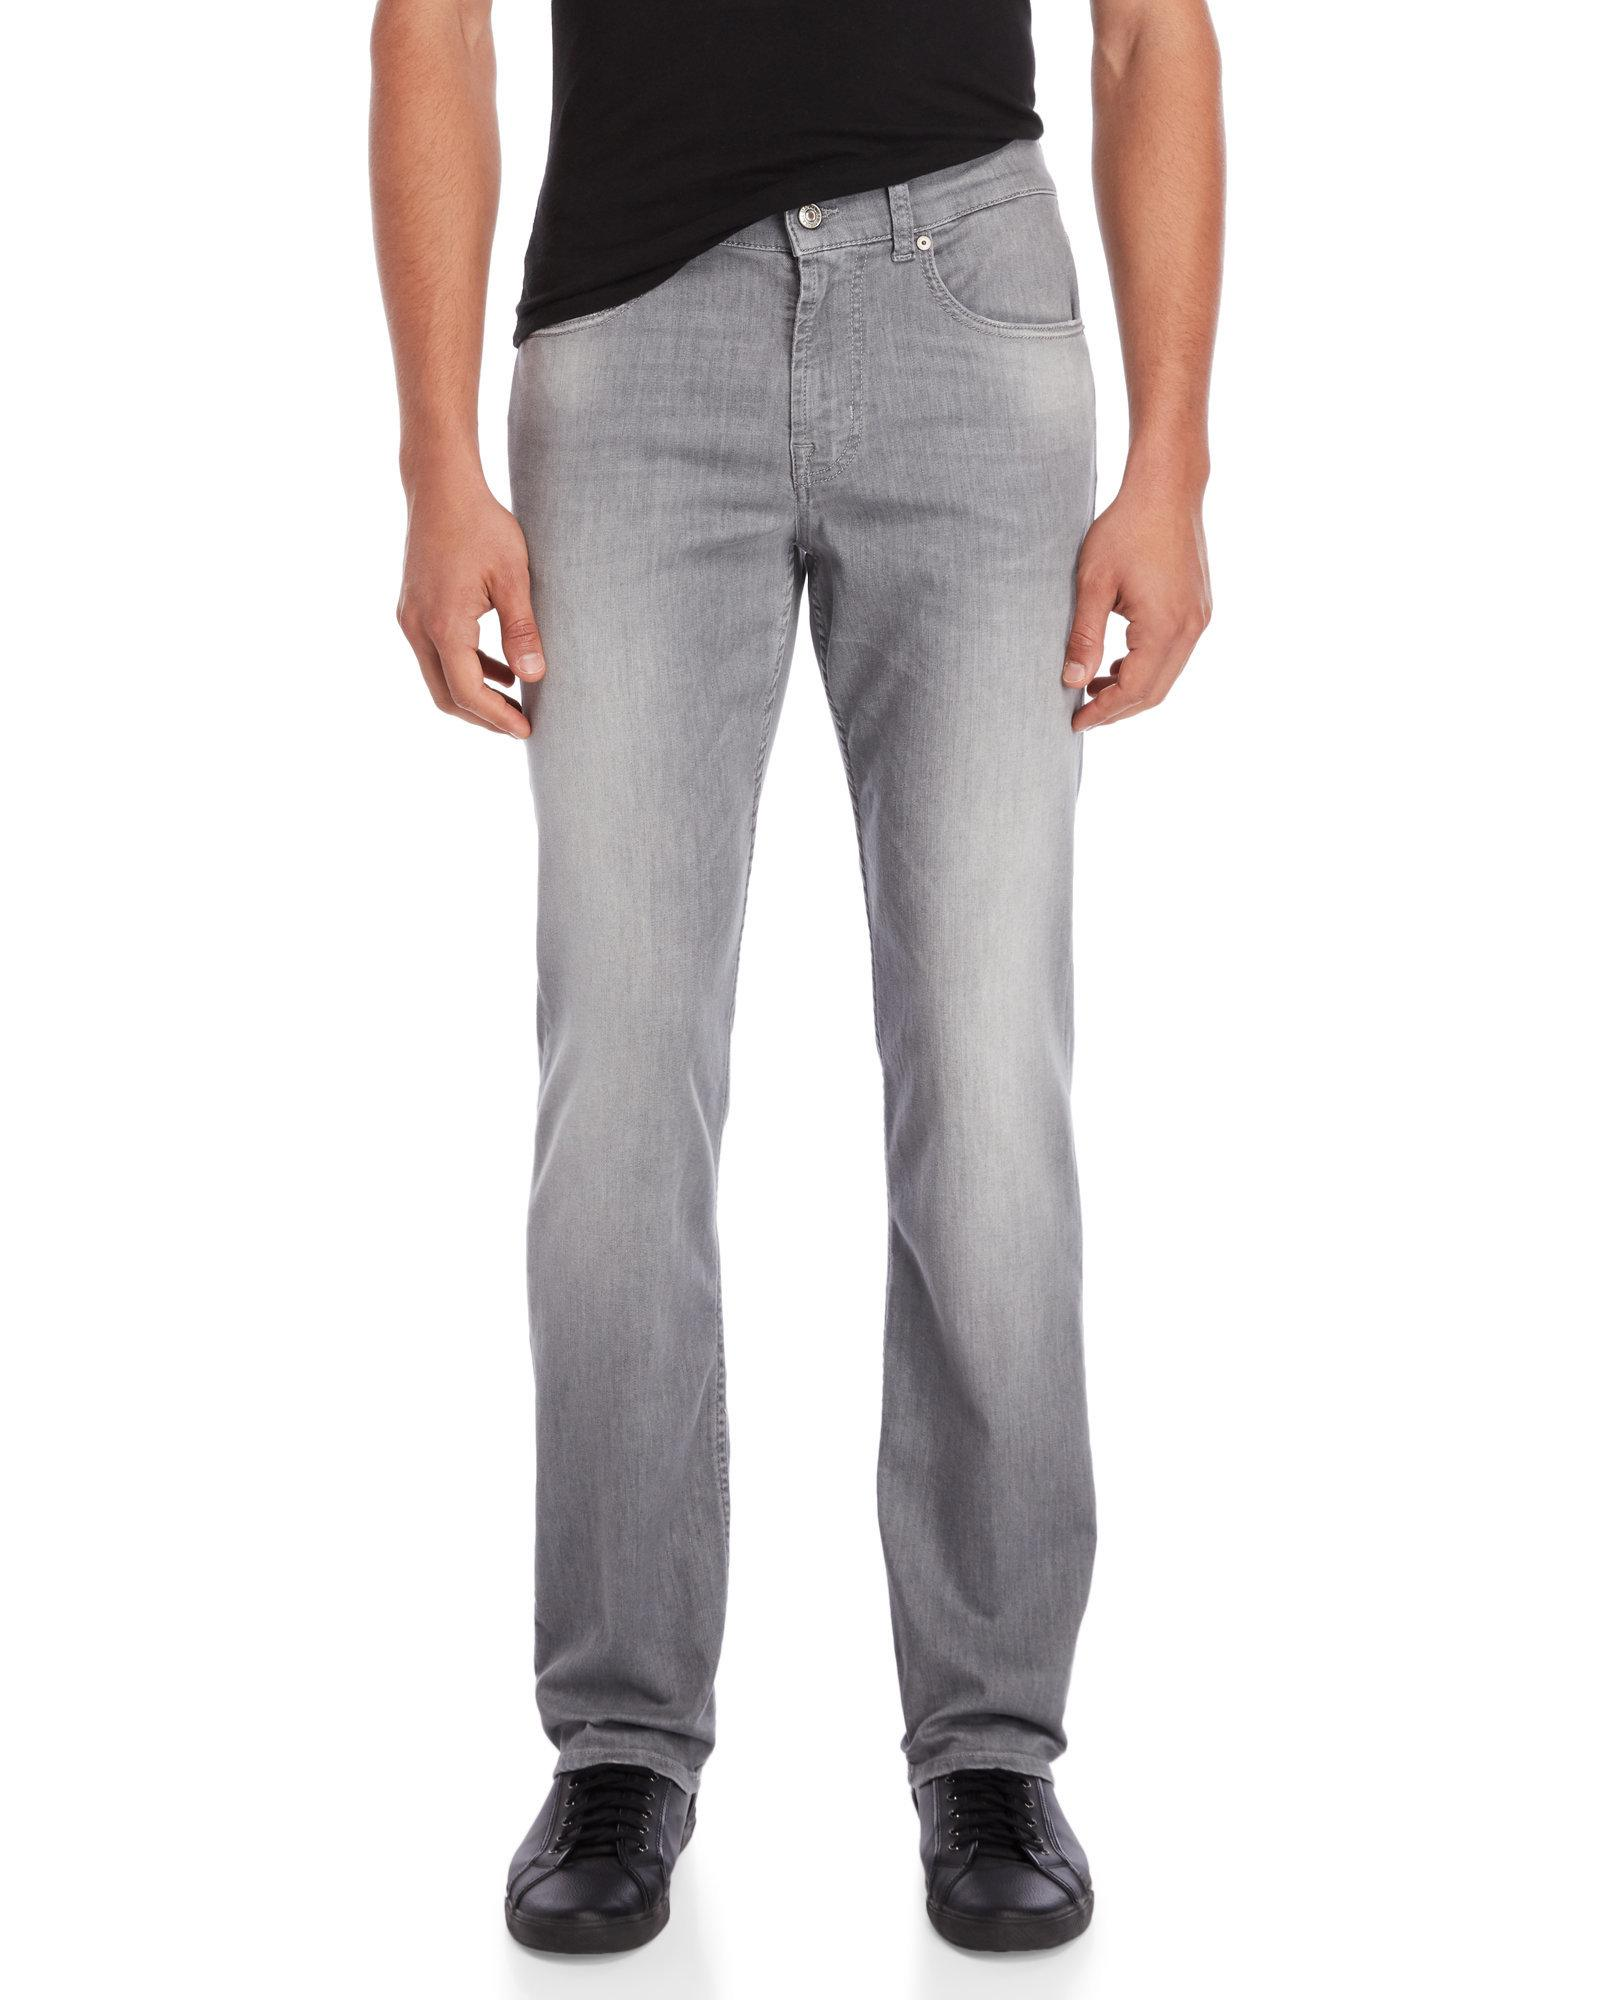 Lyst - 7 For All Mankind Grey Weightless Denim Slimmy Jeans in Gray ... b17d87e30